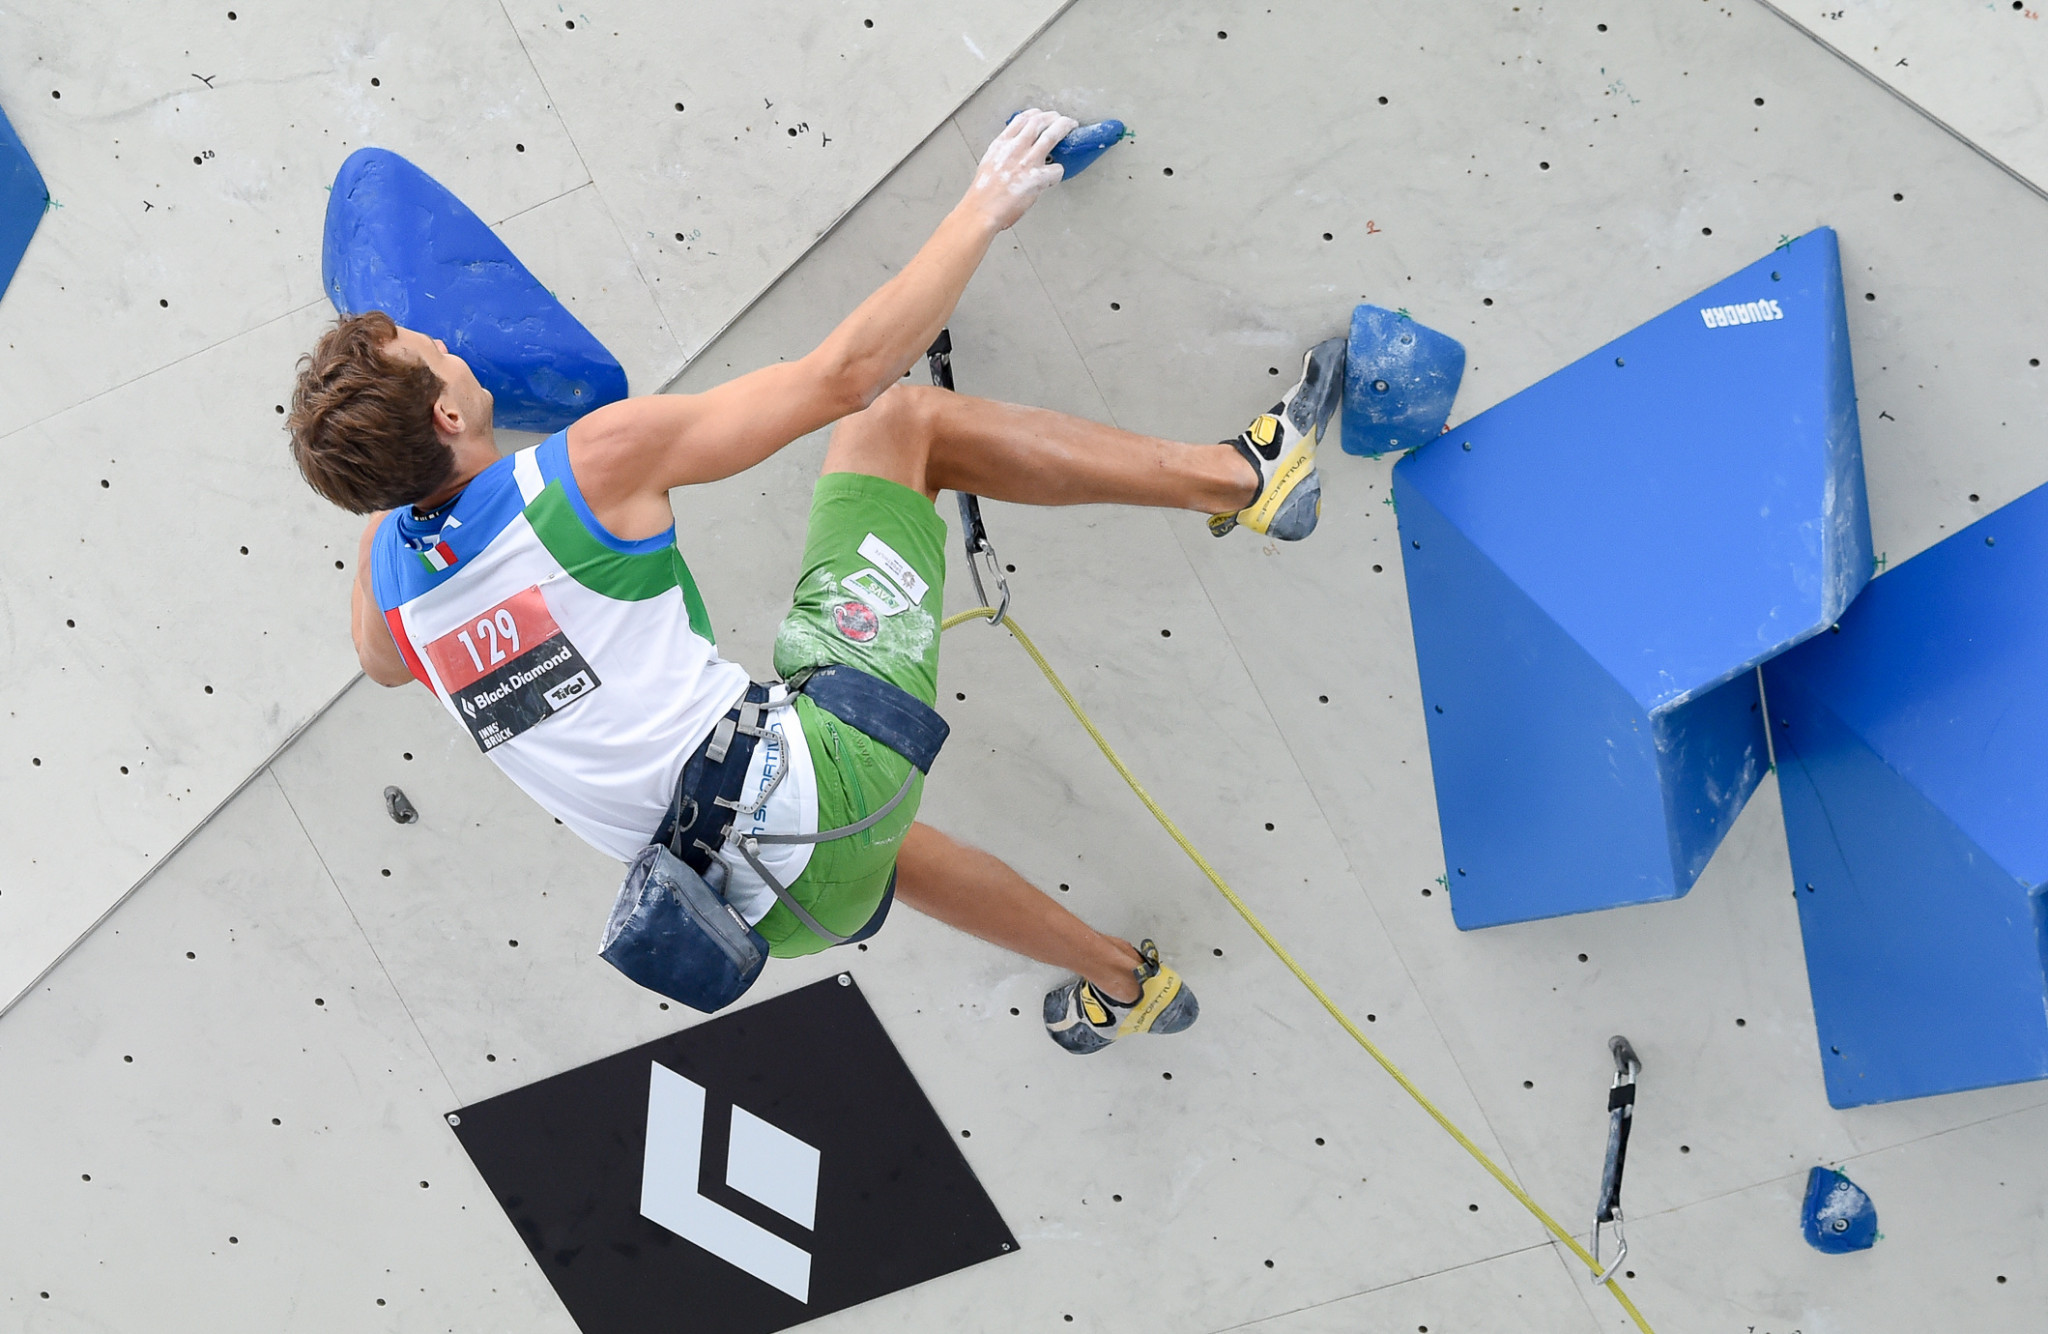 Michael Piccolruaz of Italy became the third Italian climber to qualify for Tokyo 2020 ©Getty Images